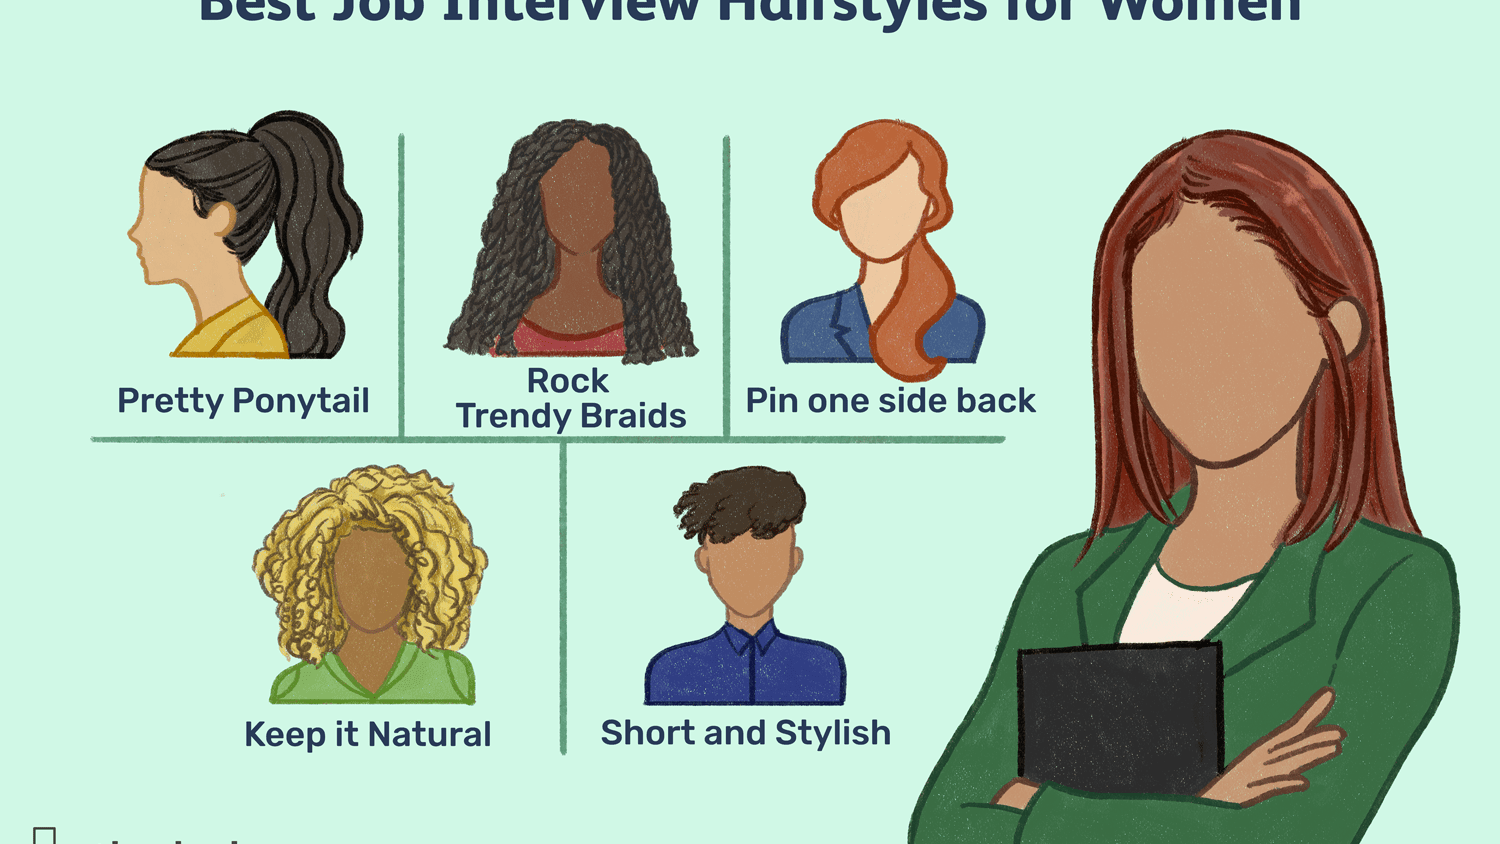 Best Job Interview Hairstyles For Women